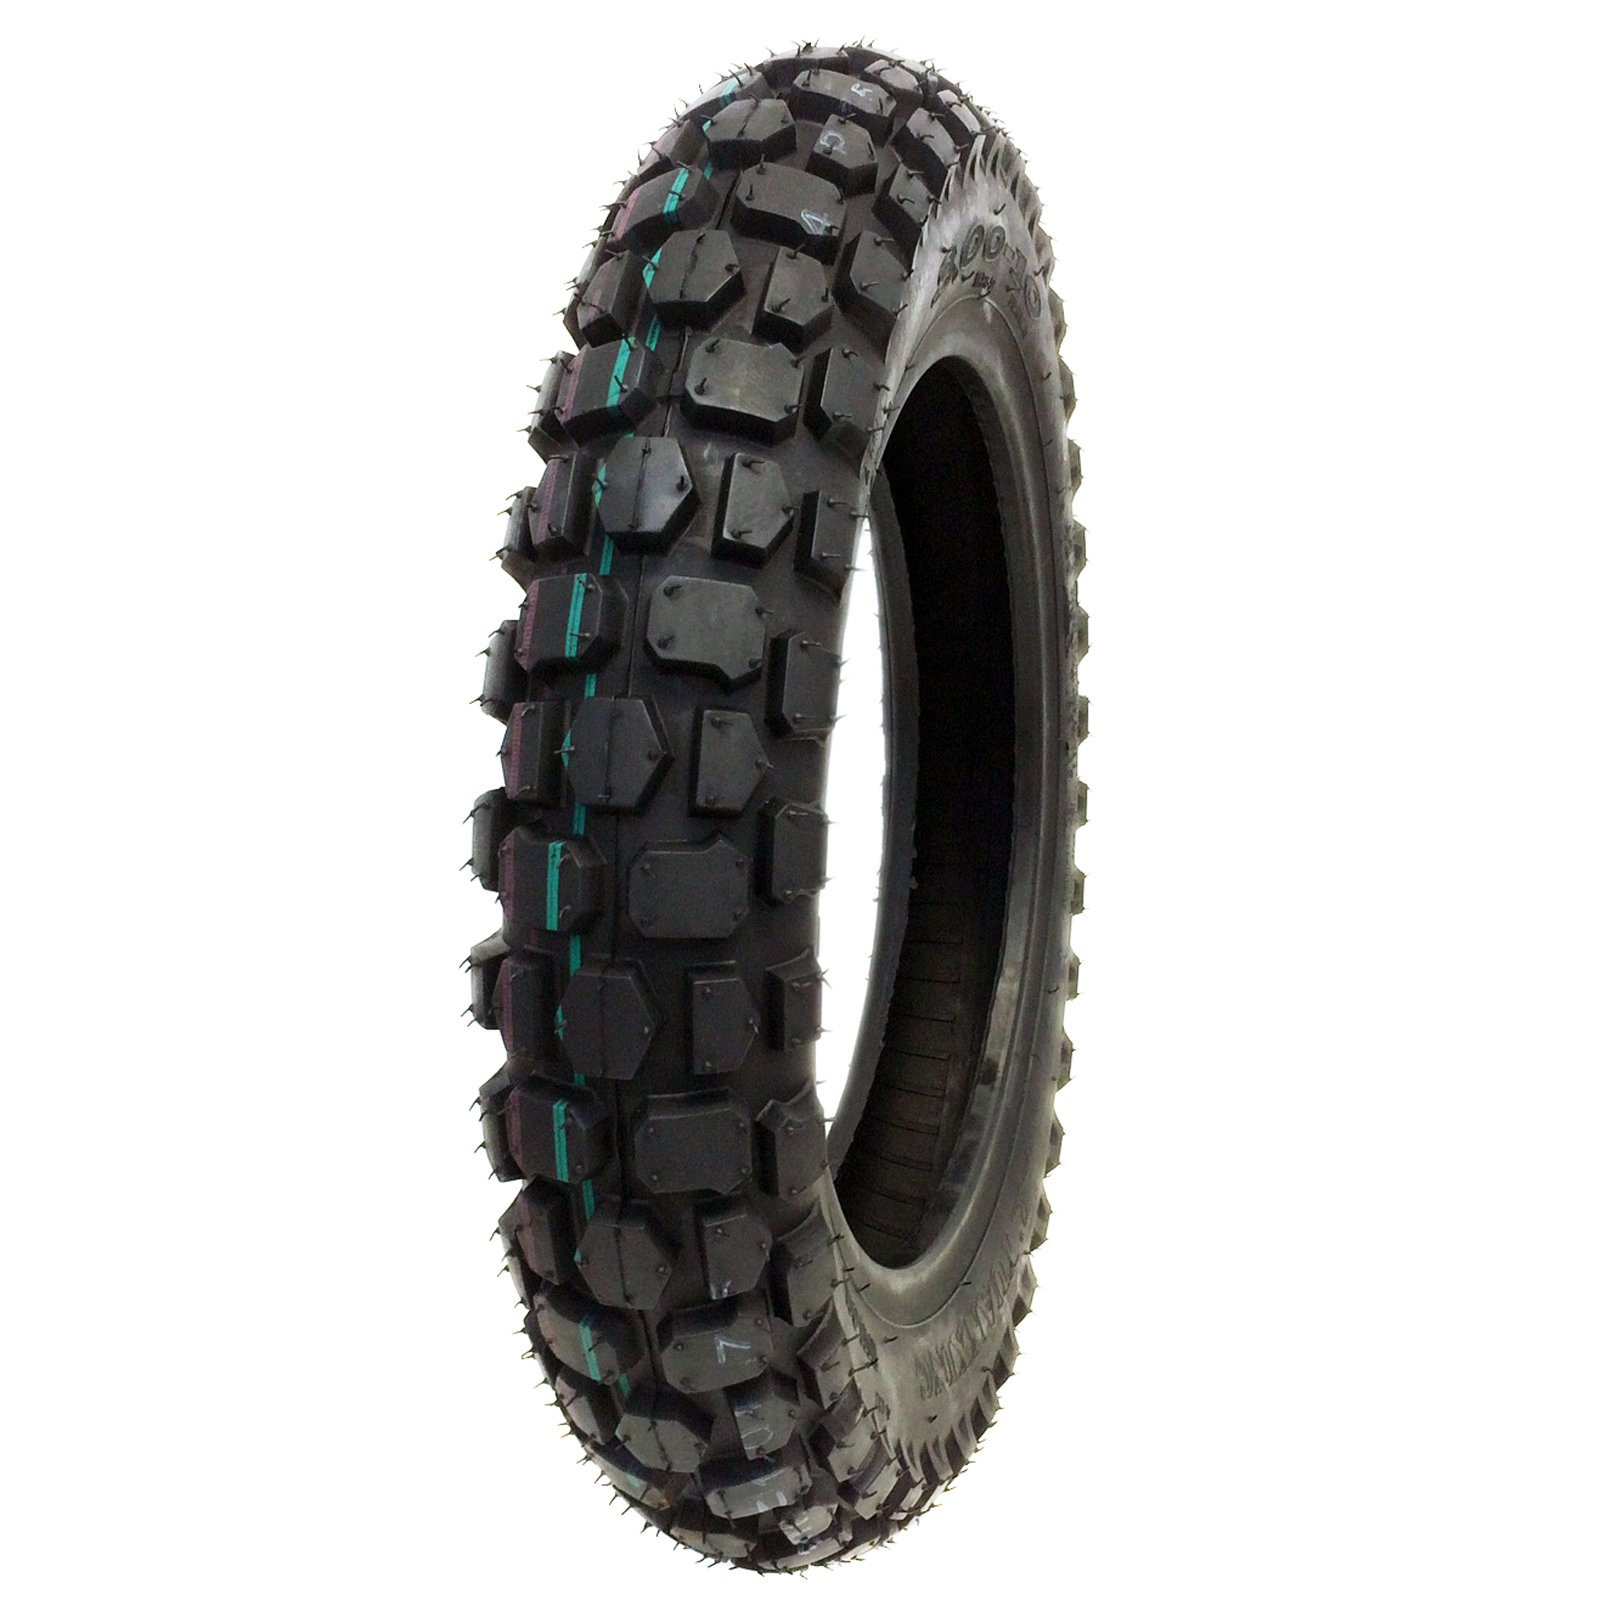 BUNDLE COMBO: Knobby Tire with Inner Tube 3.00-10 Front or Rear Trail Off Road Dirt Bike Motocross Pit